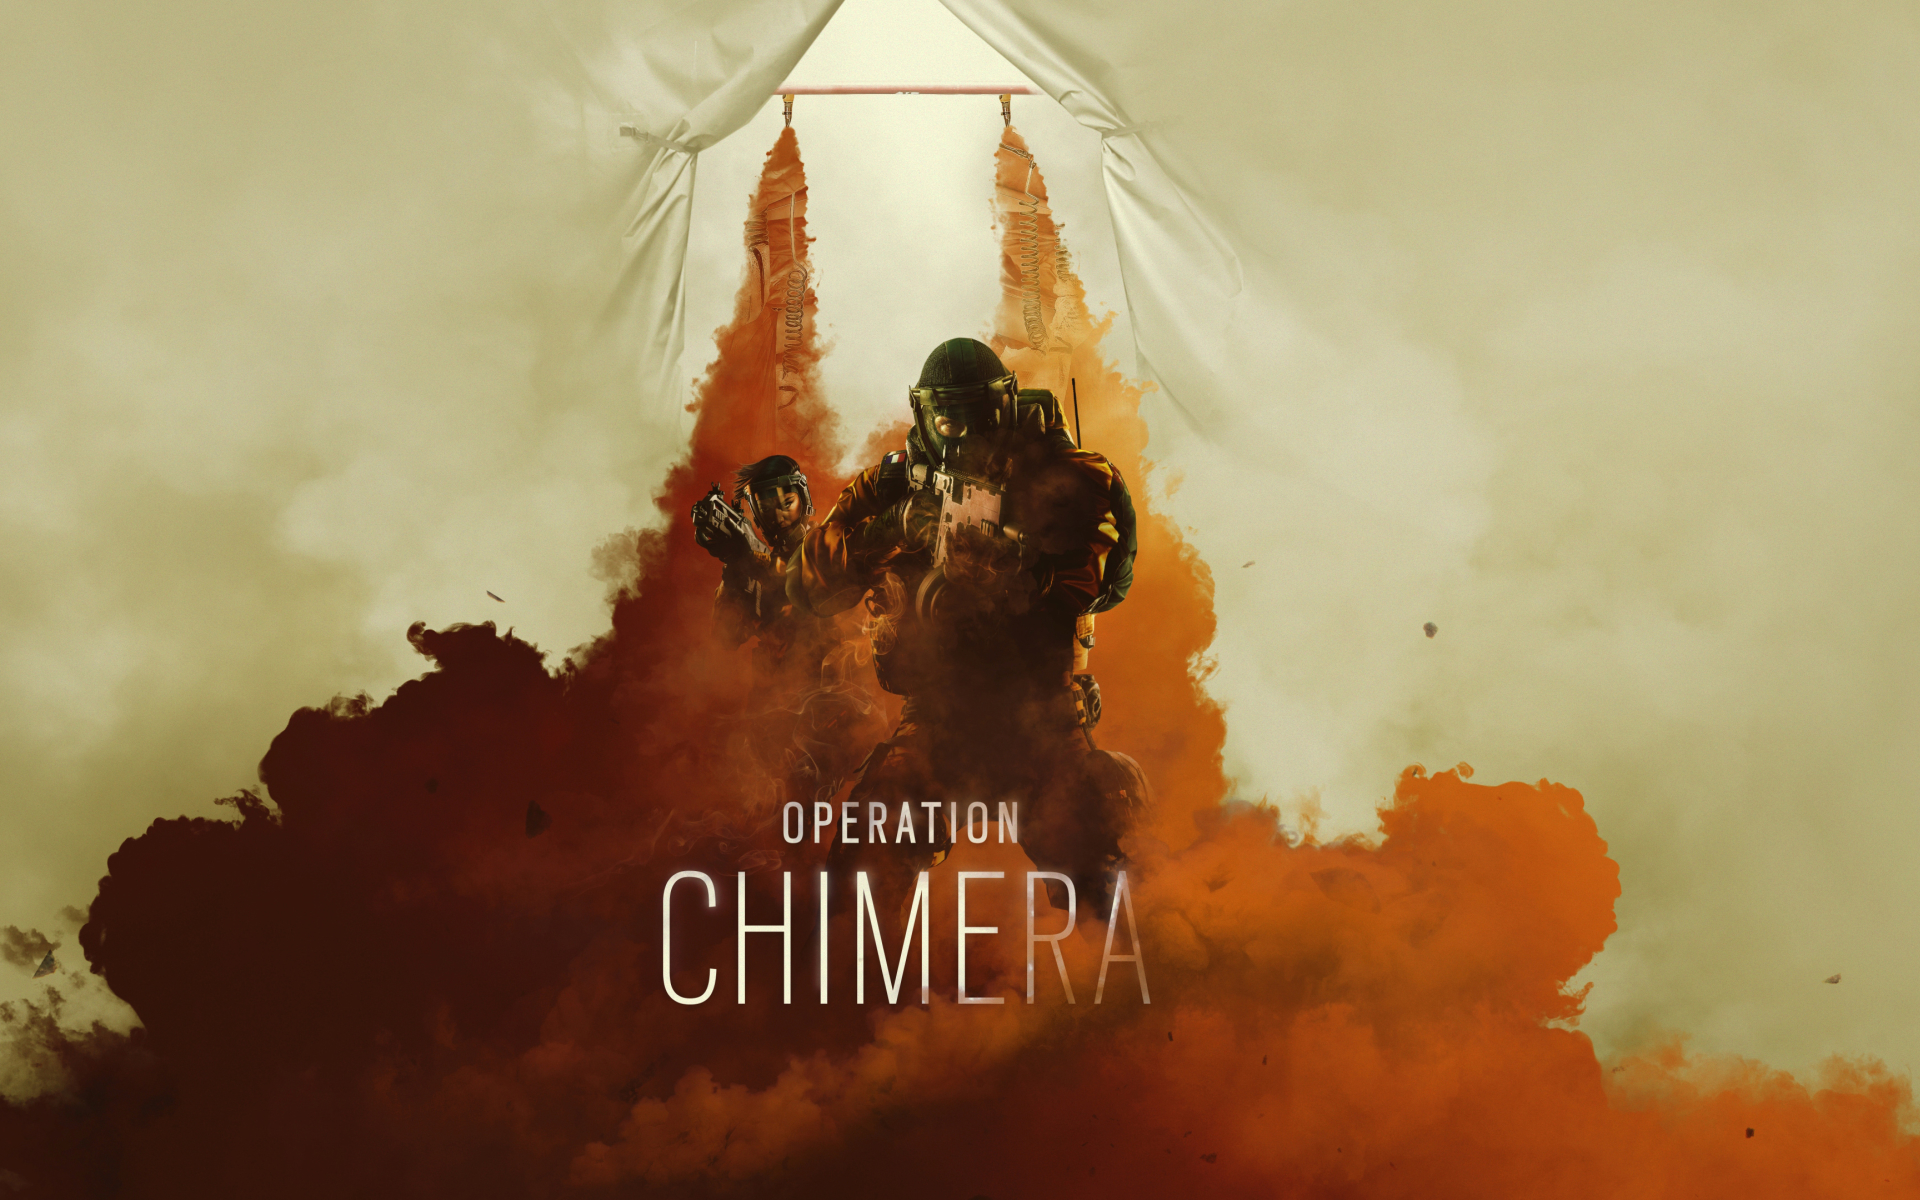 Rainbow six siege operation chimera hd 4k wallpaper - Operation rainbow download ...